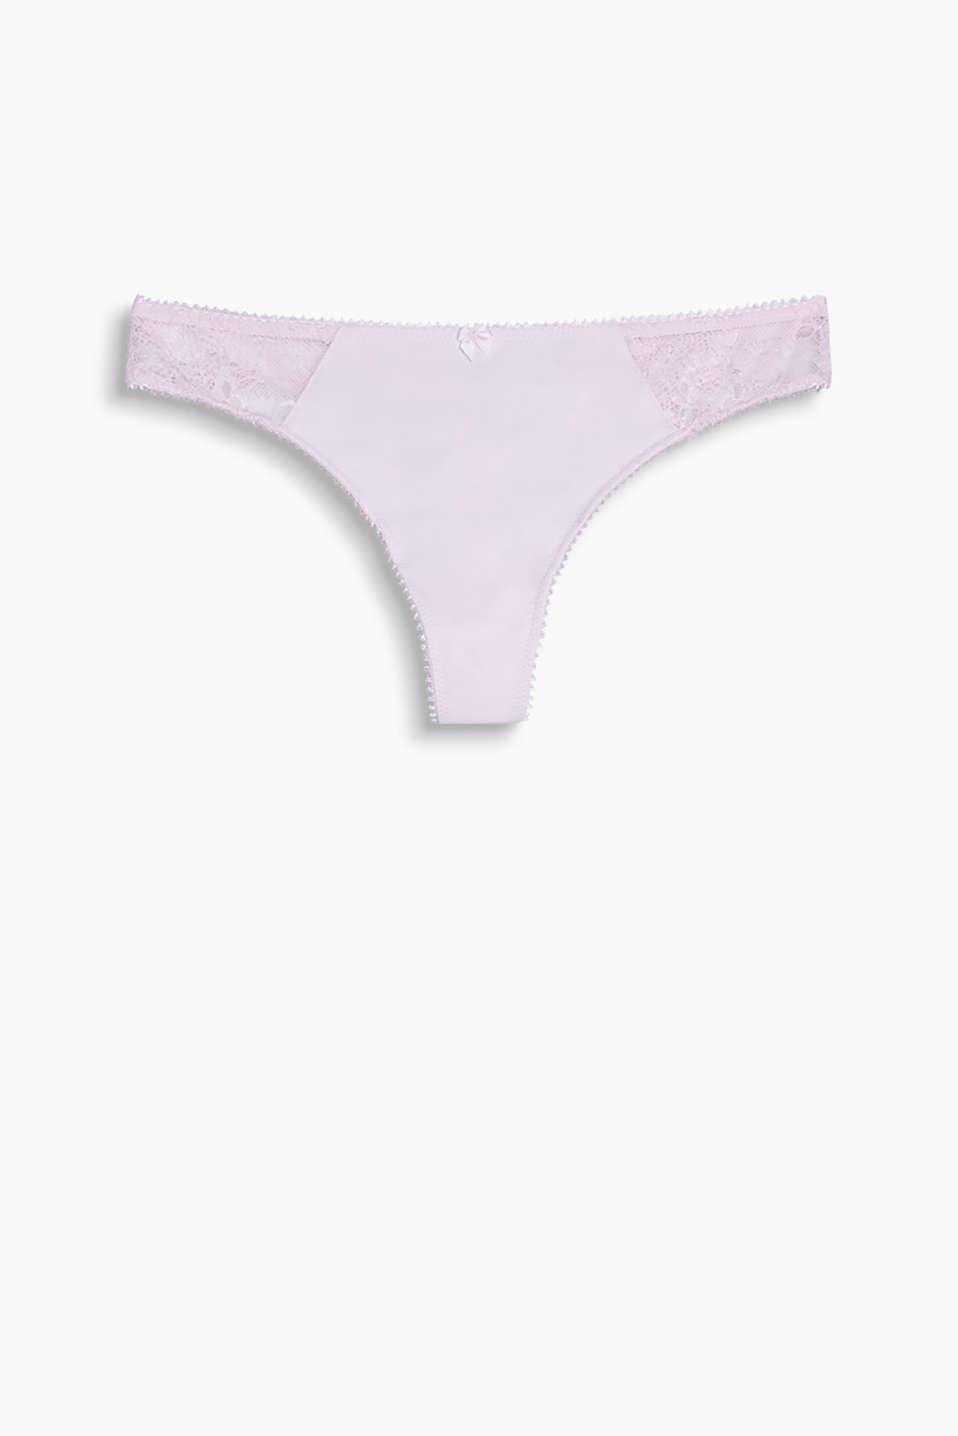 Collection: OBUNNY - hipster thong made of delicate lace with a detachable pompom